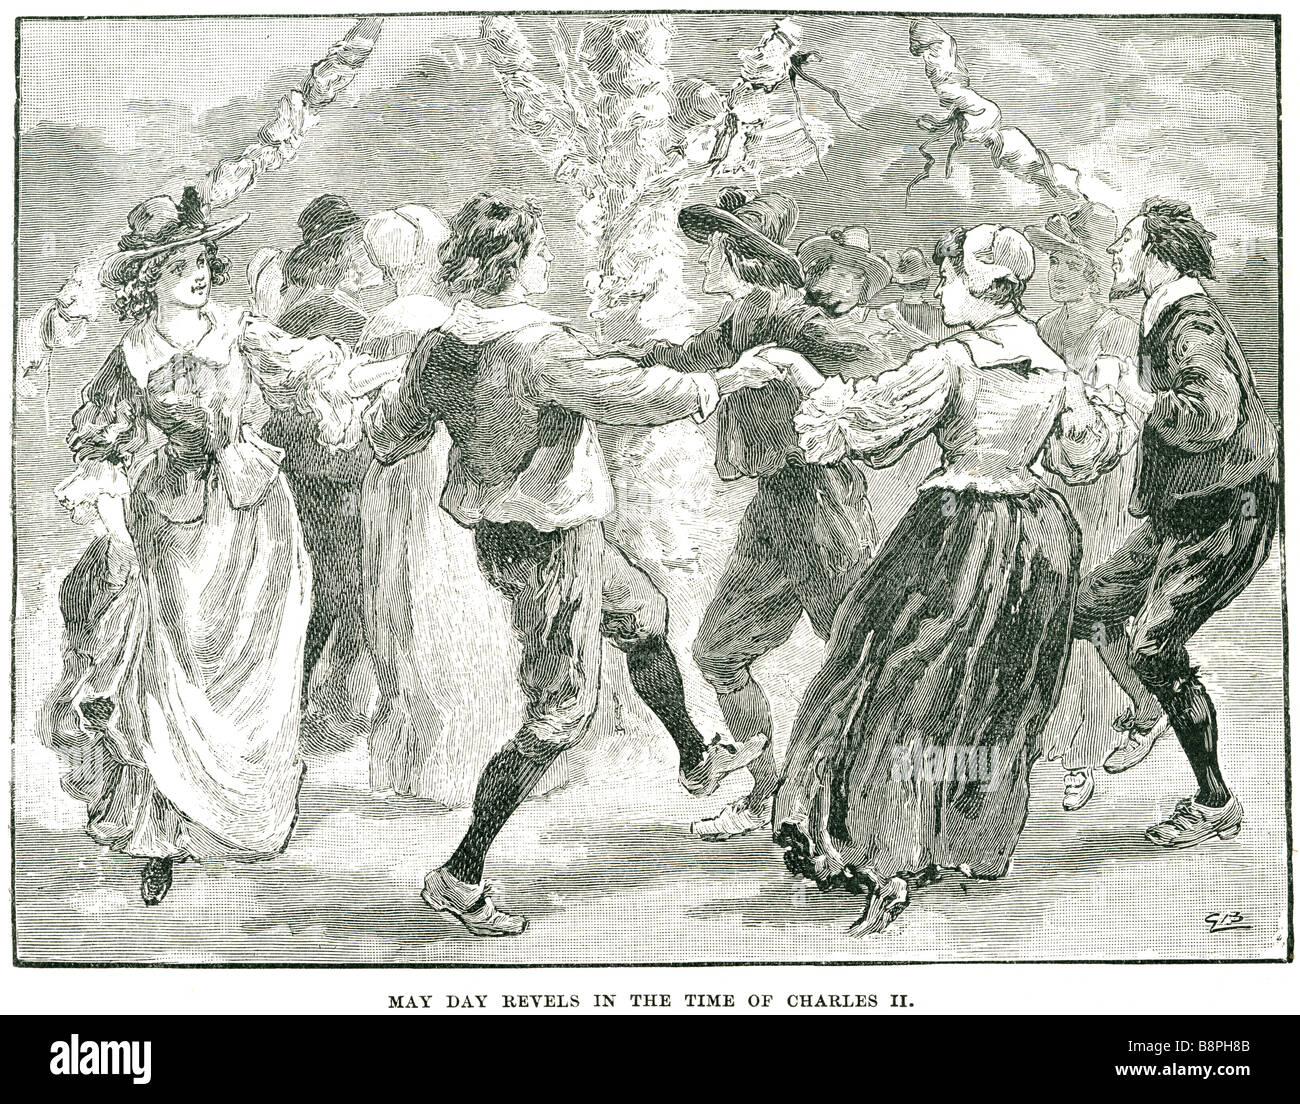 may day revels in the time of charles II dancing party traditional clothing period dress summer park garden pole - Stock Image